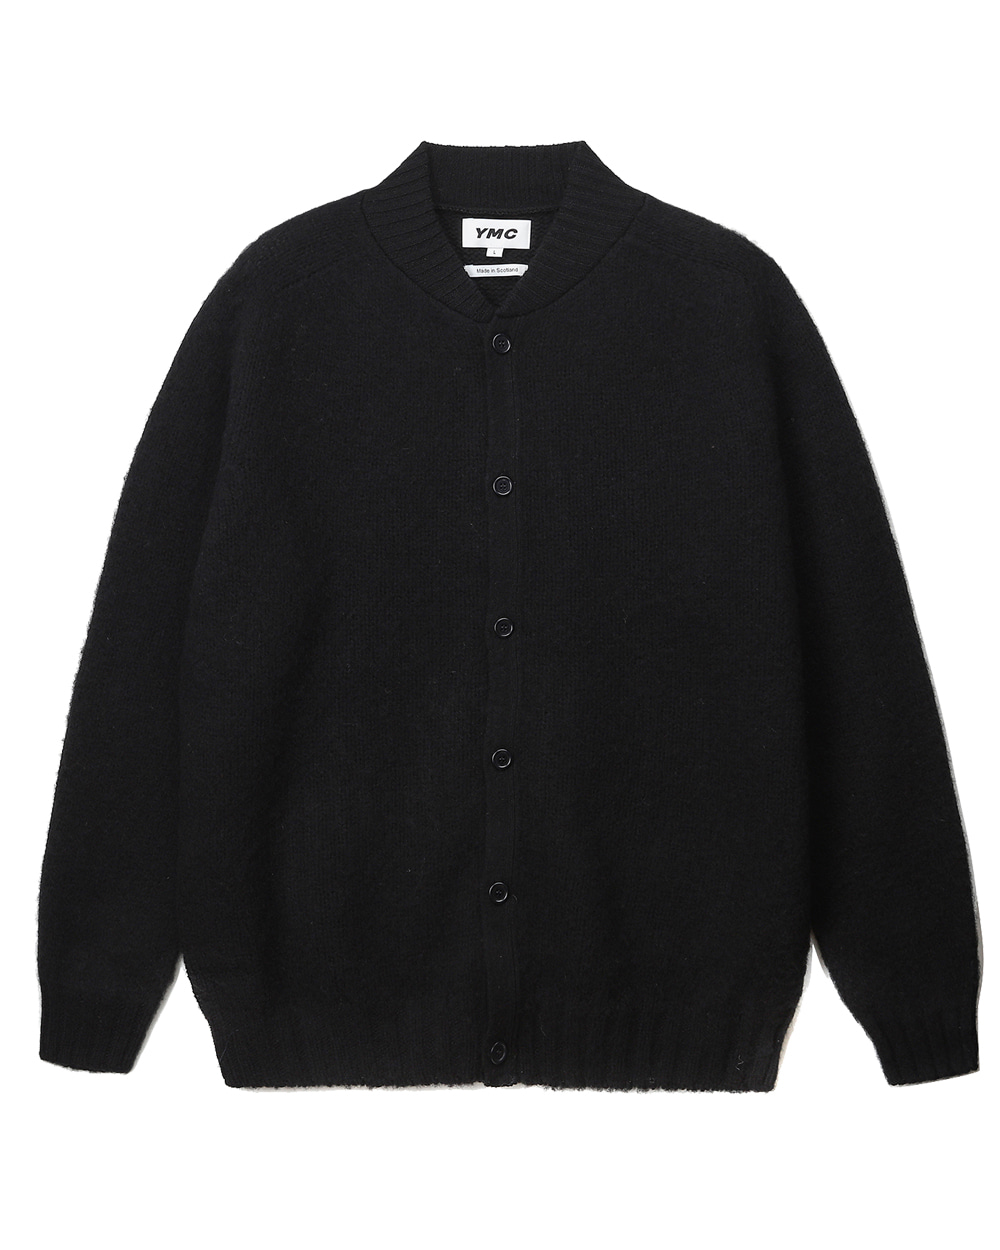 YMC Baseball Cardy (Black)